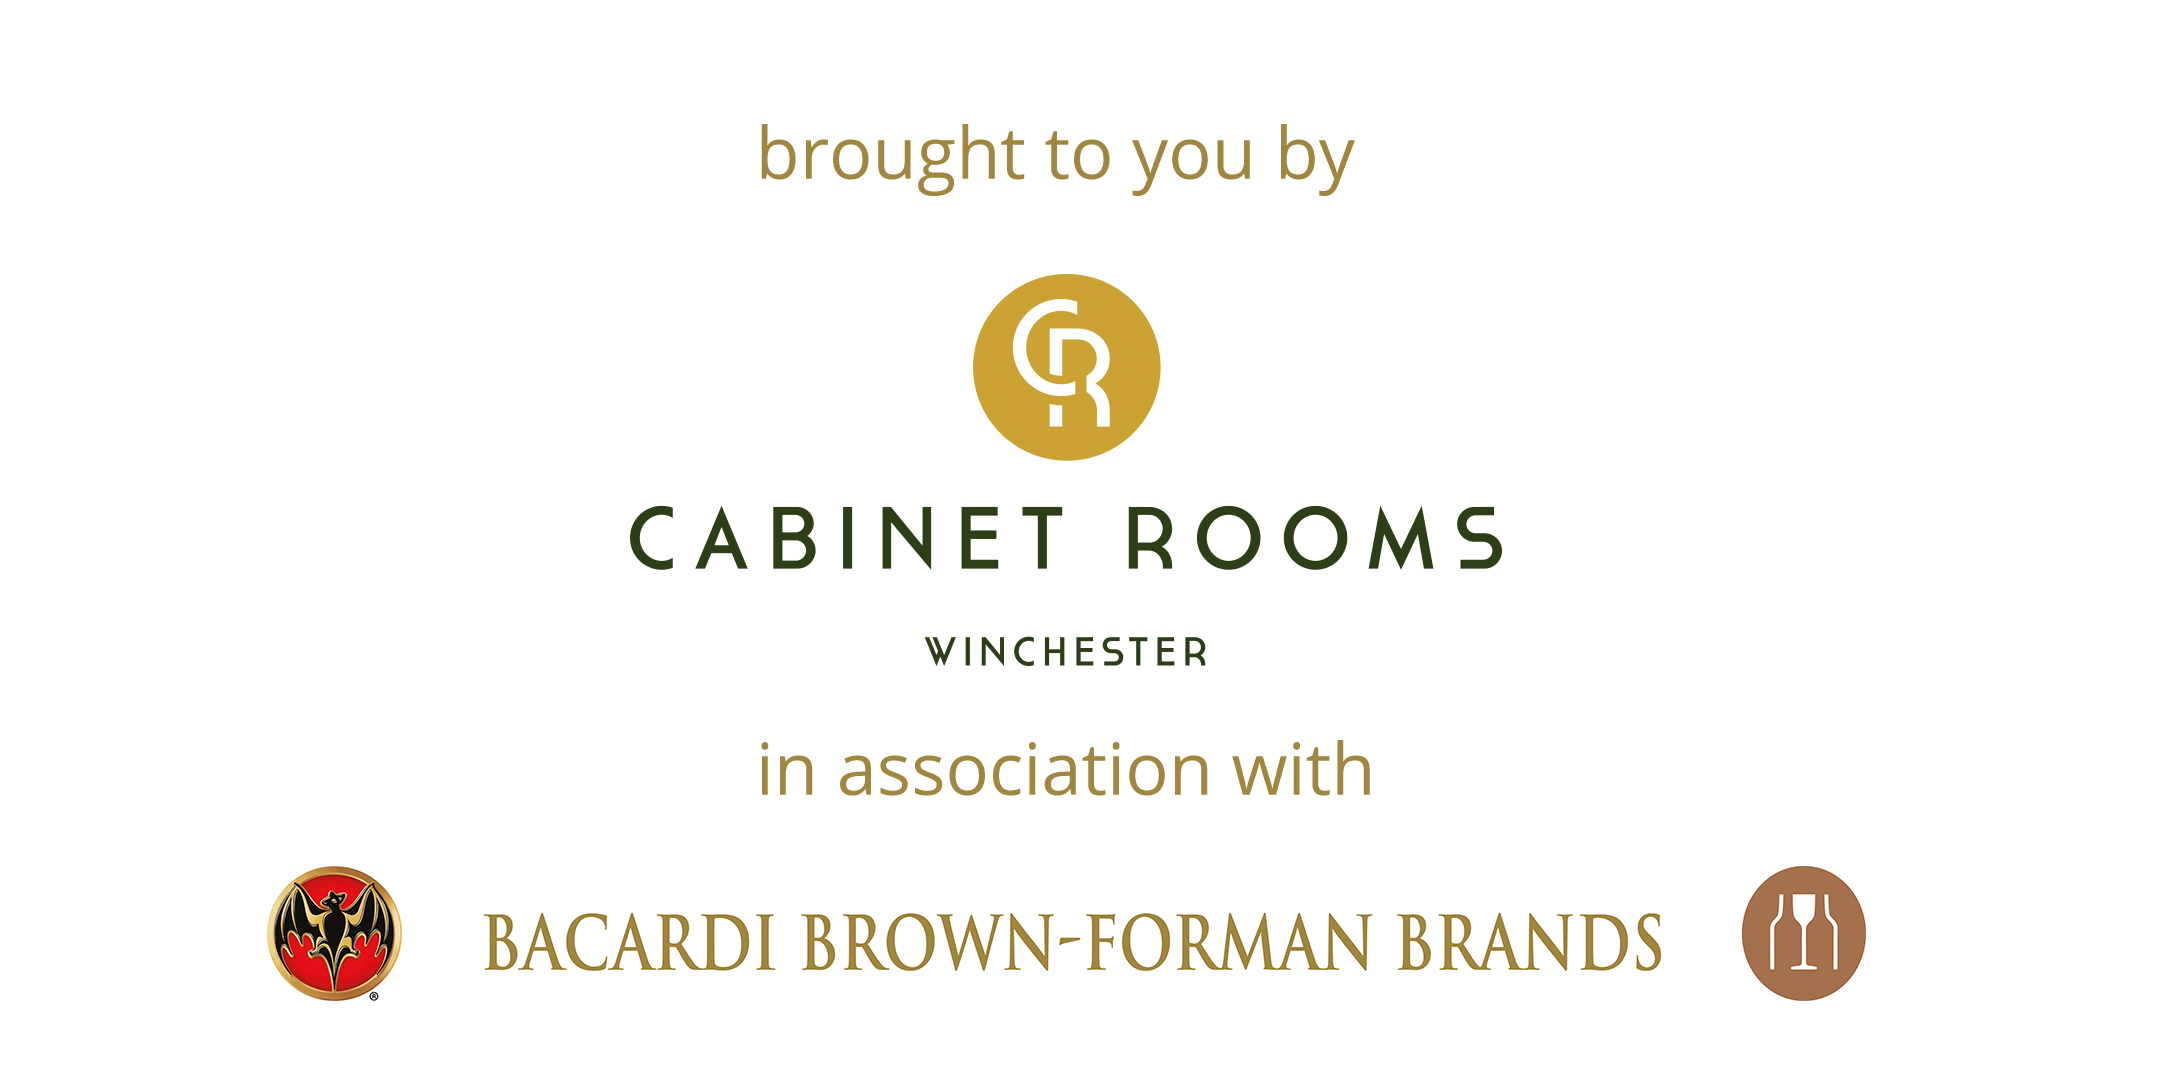 Cabinet Rooms Bacardi